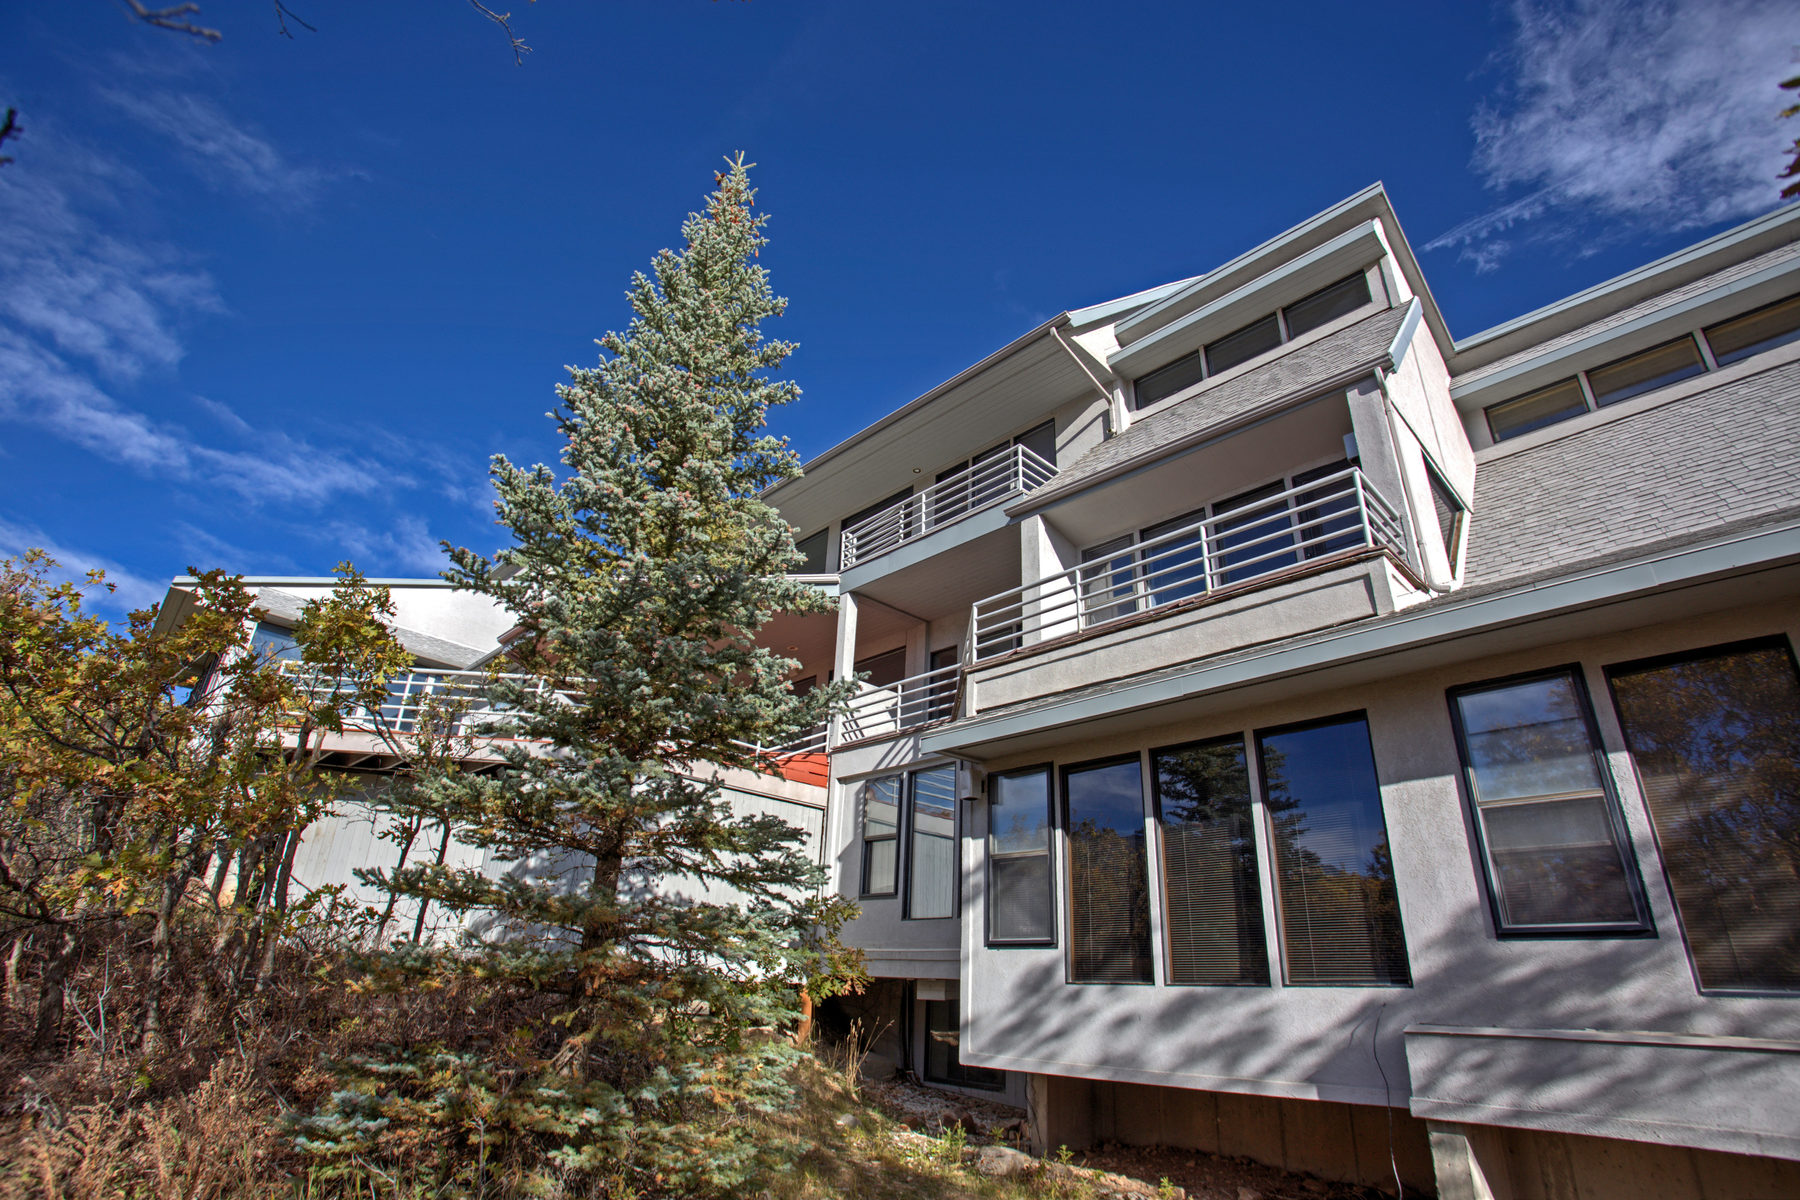 Villa per Vendita alle ore This Mountaintop Gem is the Perfect Personal or Corporate Retreat 325 Mountain Top Dr Park City, Utah, 84060 Stati Uniti